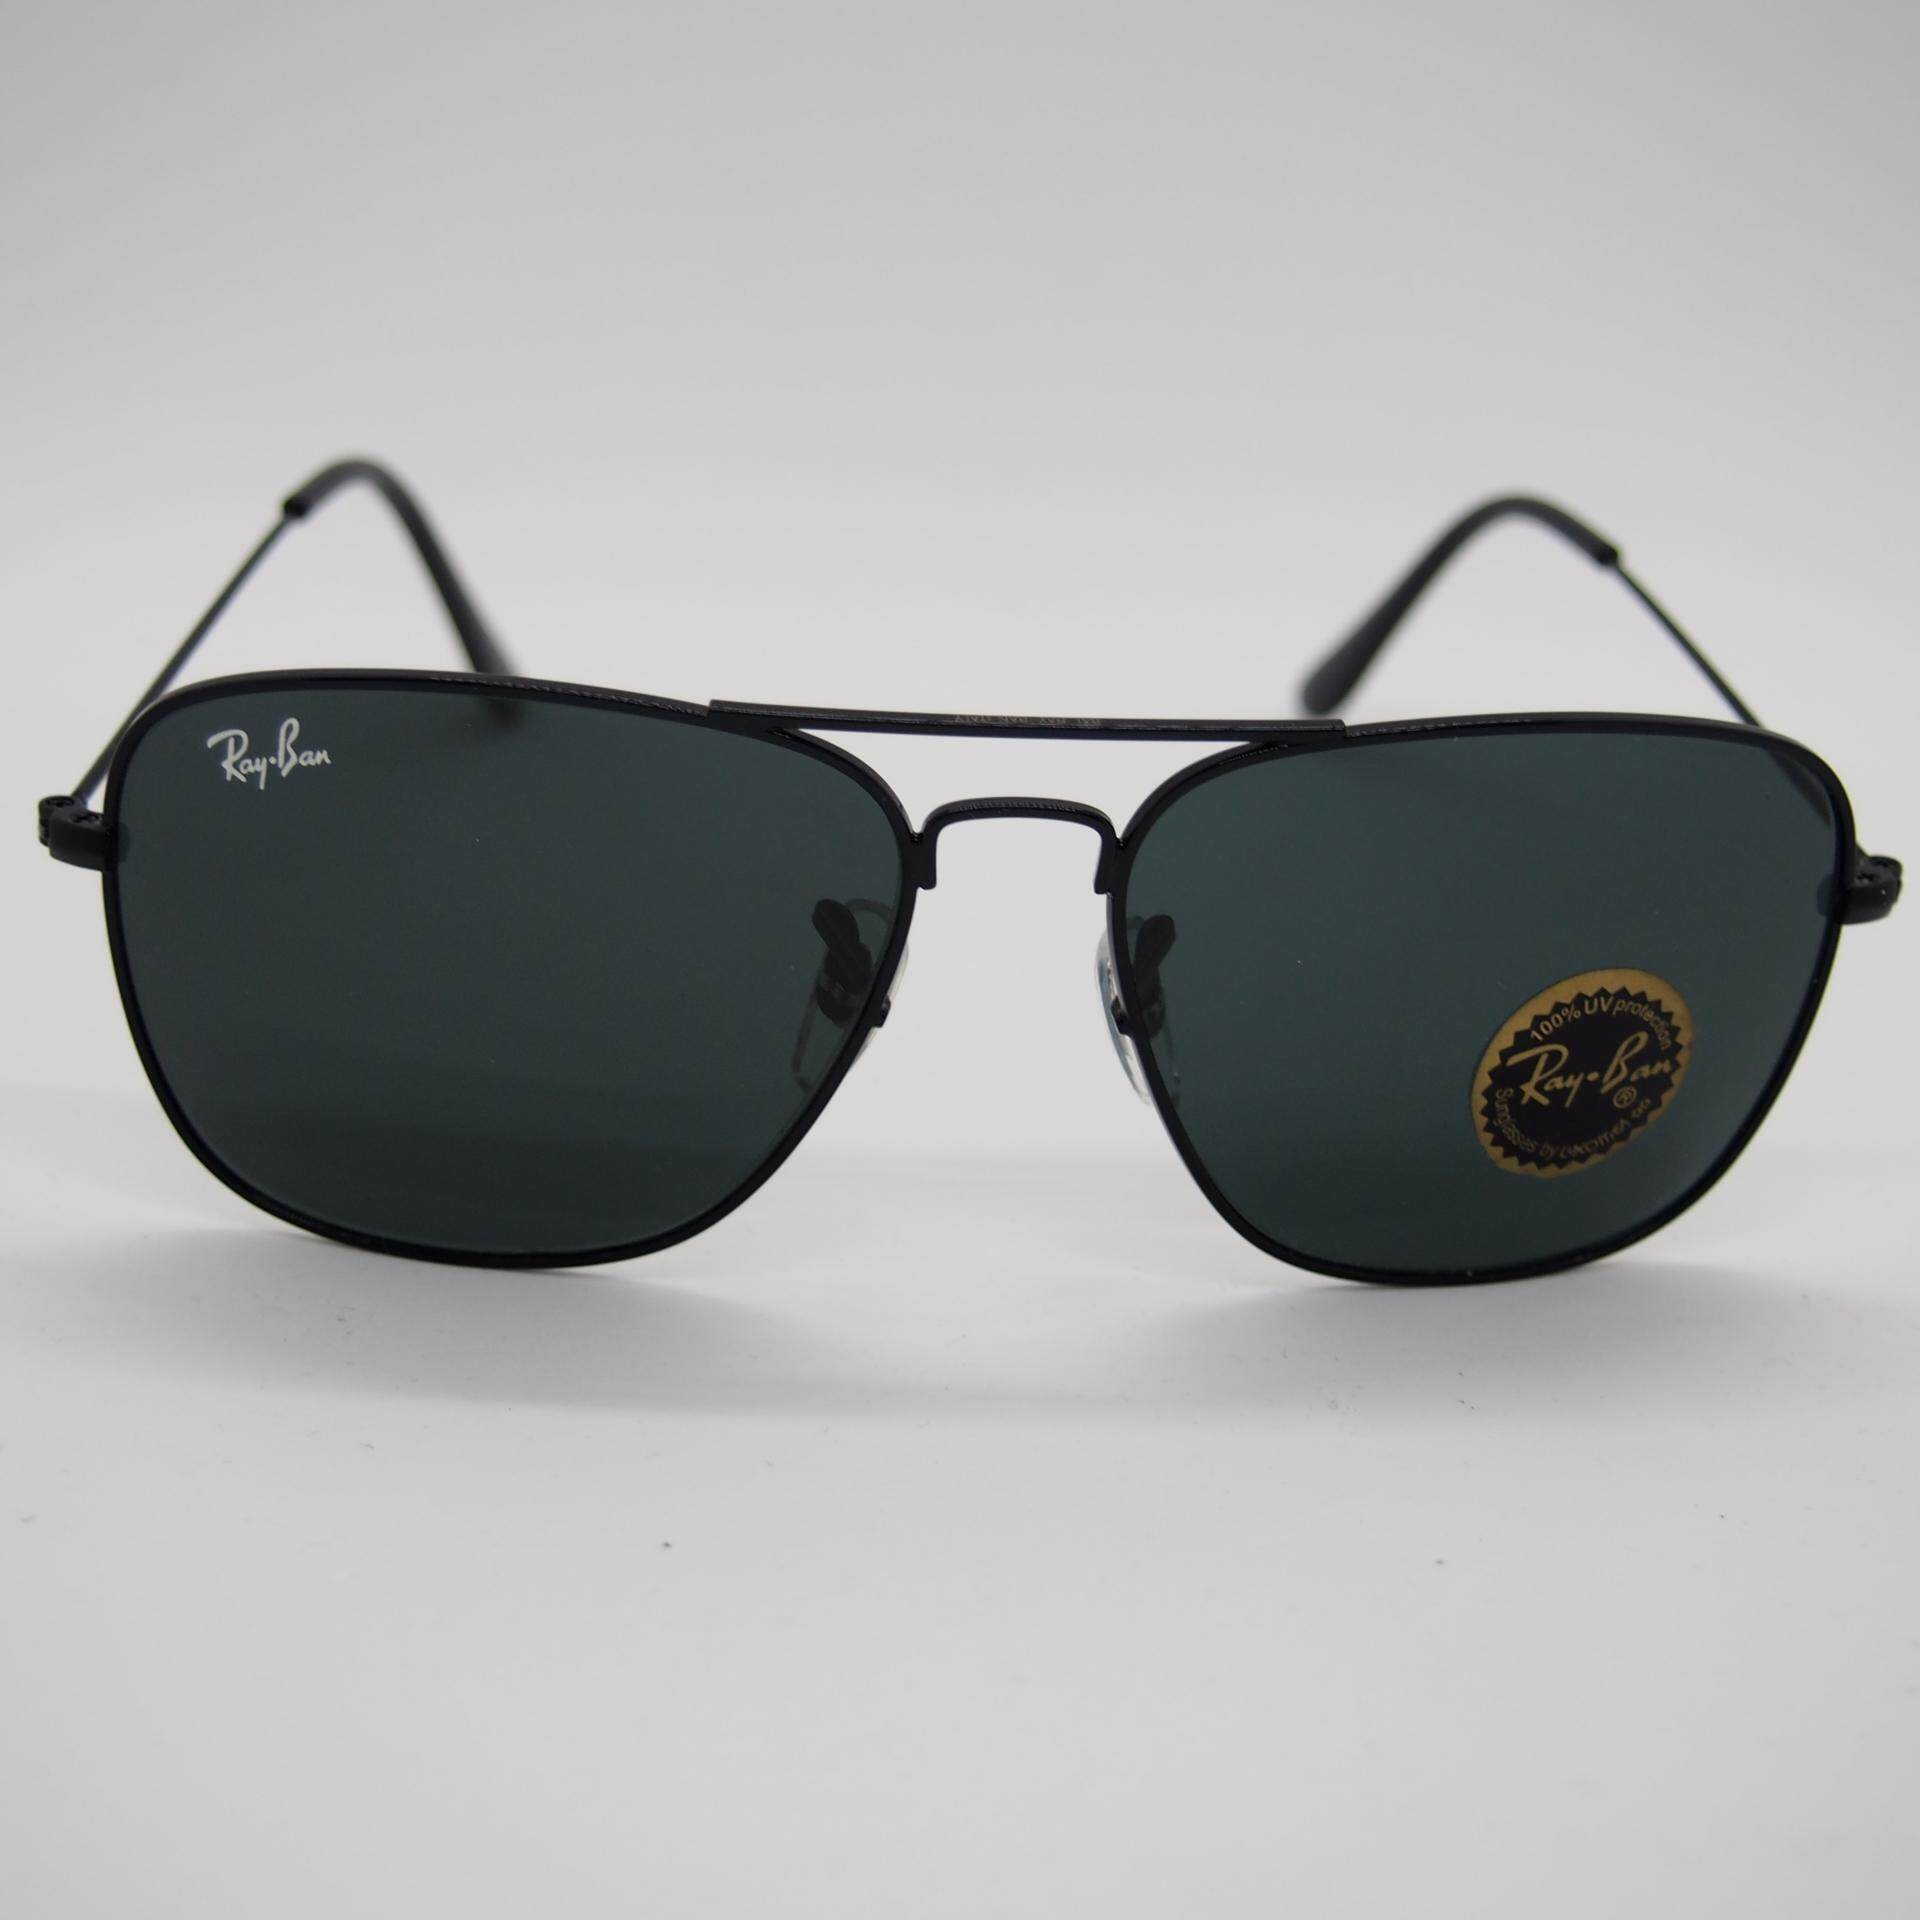 3b81045e3f Ray-Ban RB 3217 Replacement Lenses   Temples